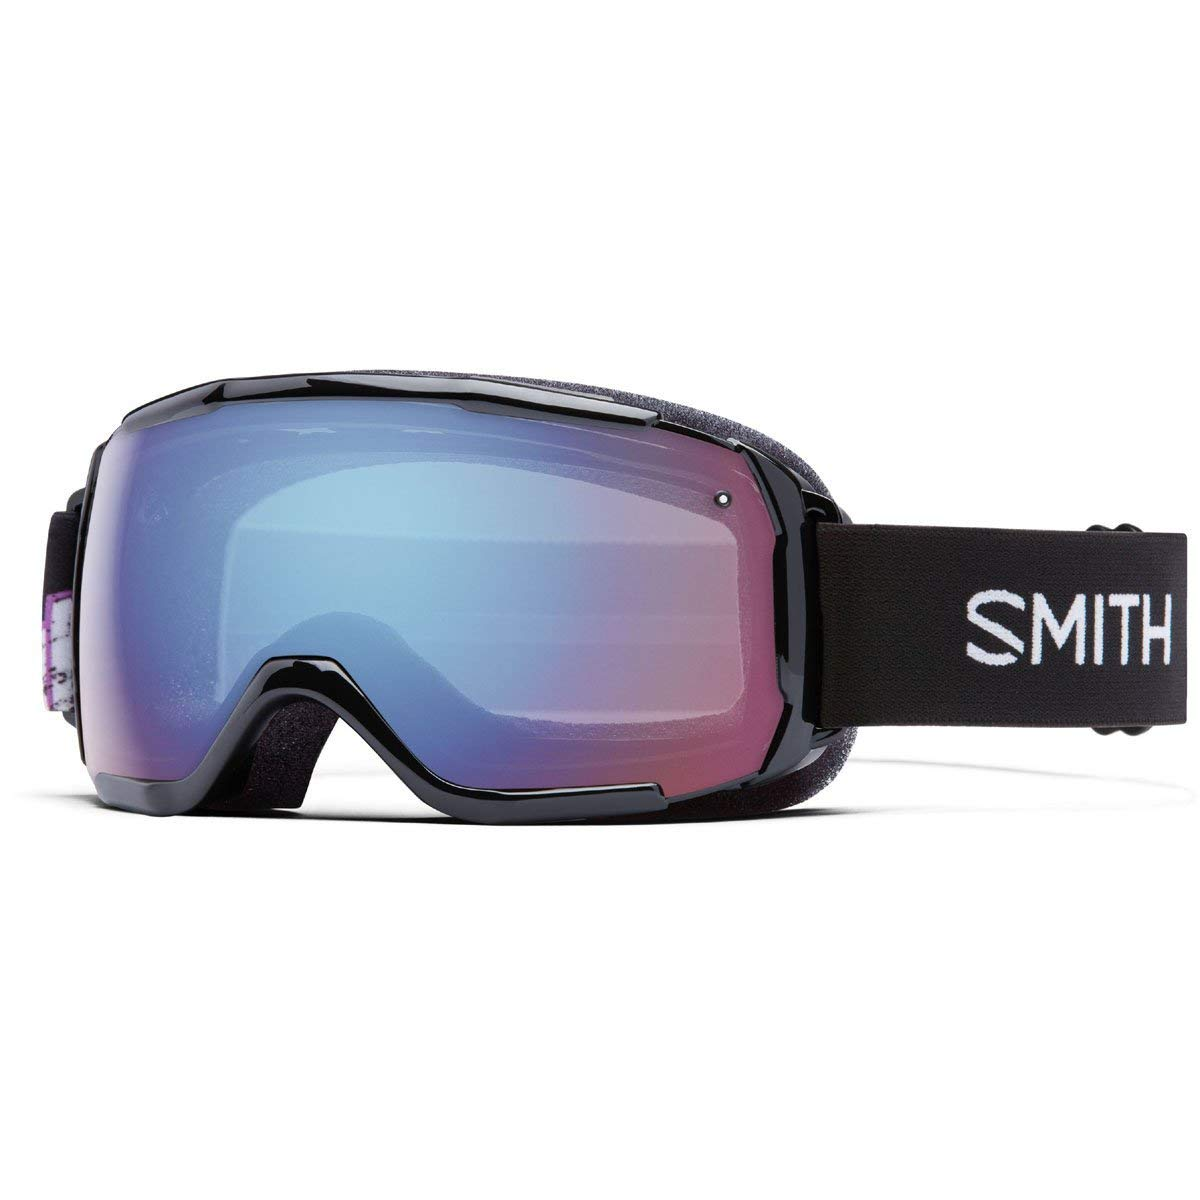 61b3f9049515 Get Quotations · Smith Optics Goggles Youth Grom Junior Series Carbonic-x  Lens GR6